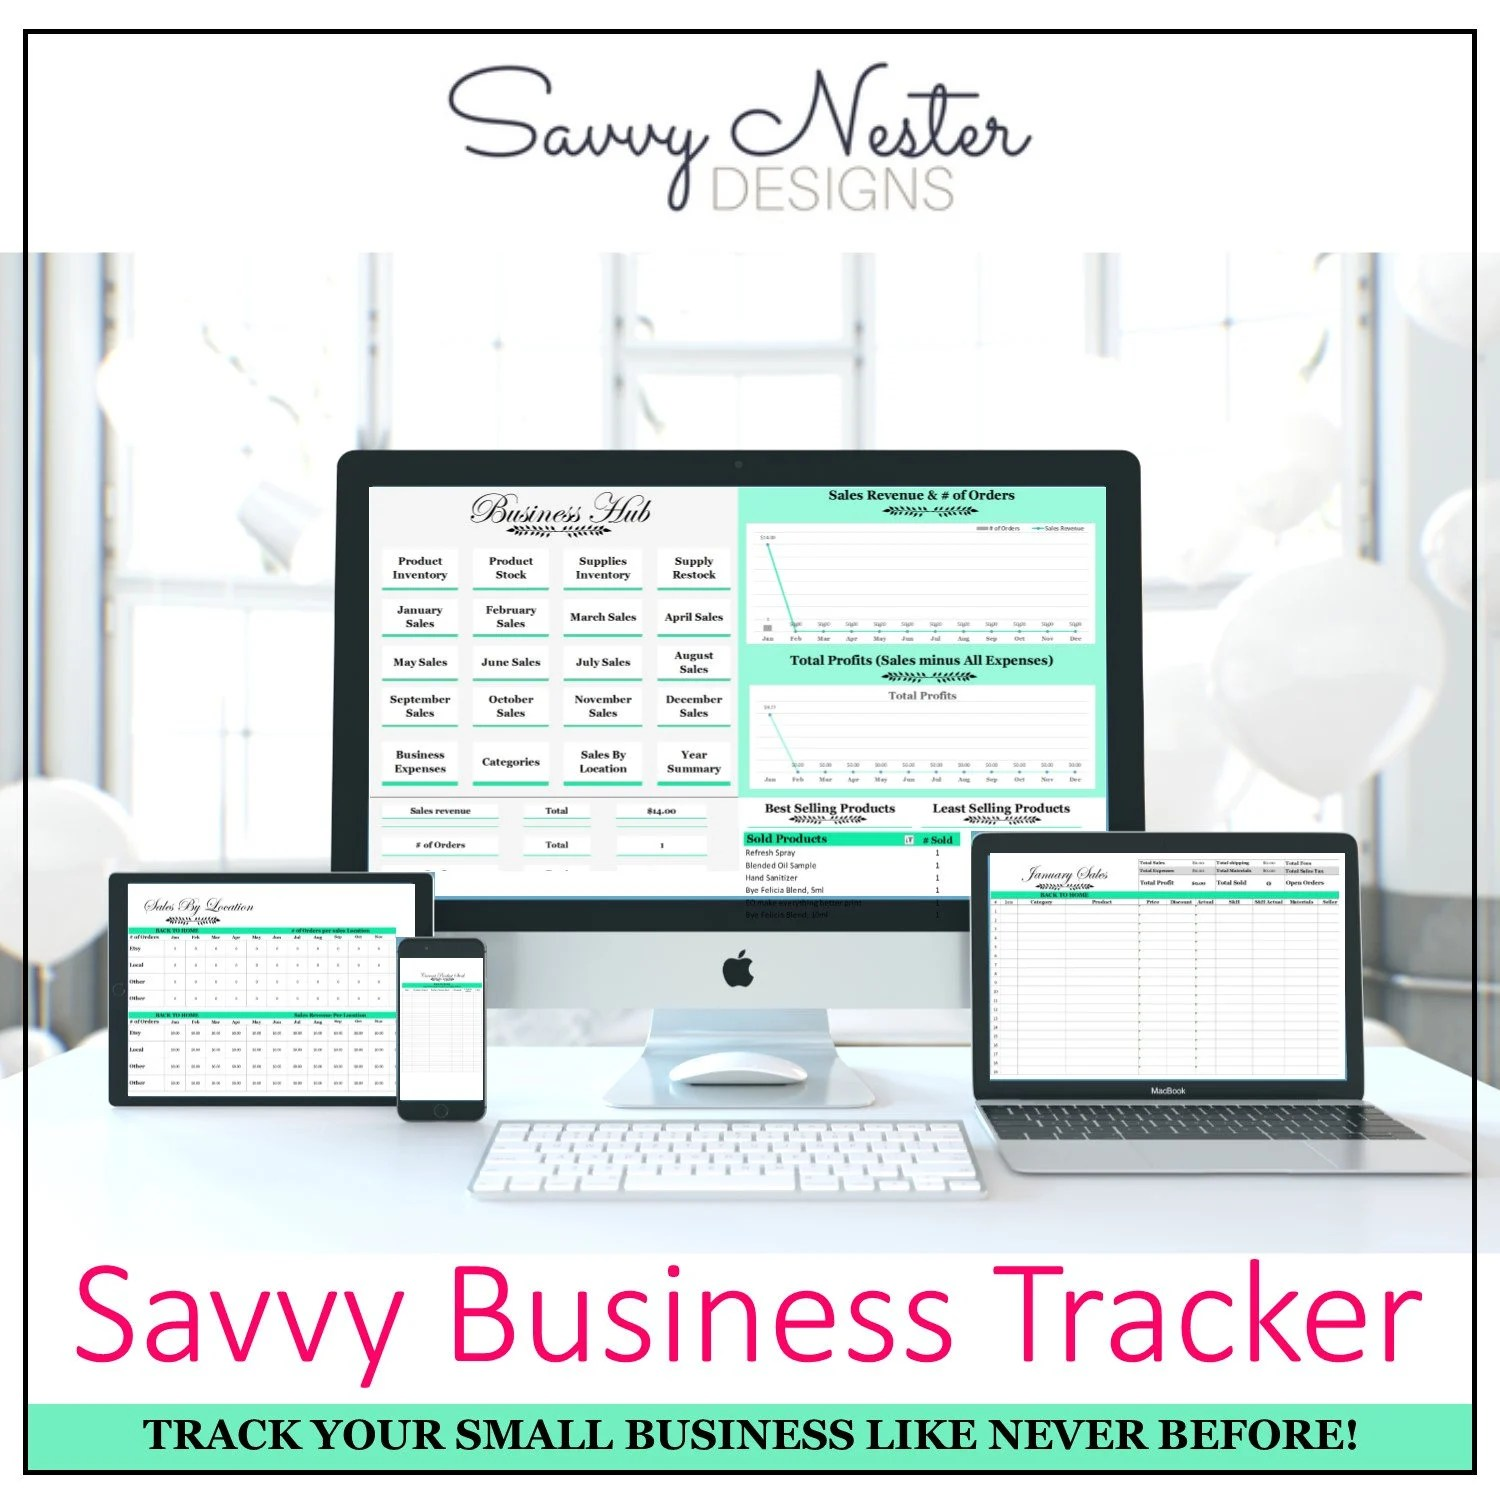 Business planner productivity planner daily planner Etsy